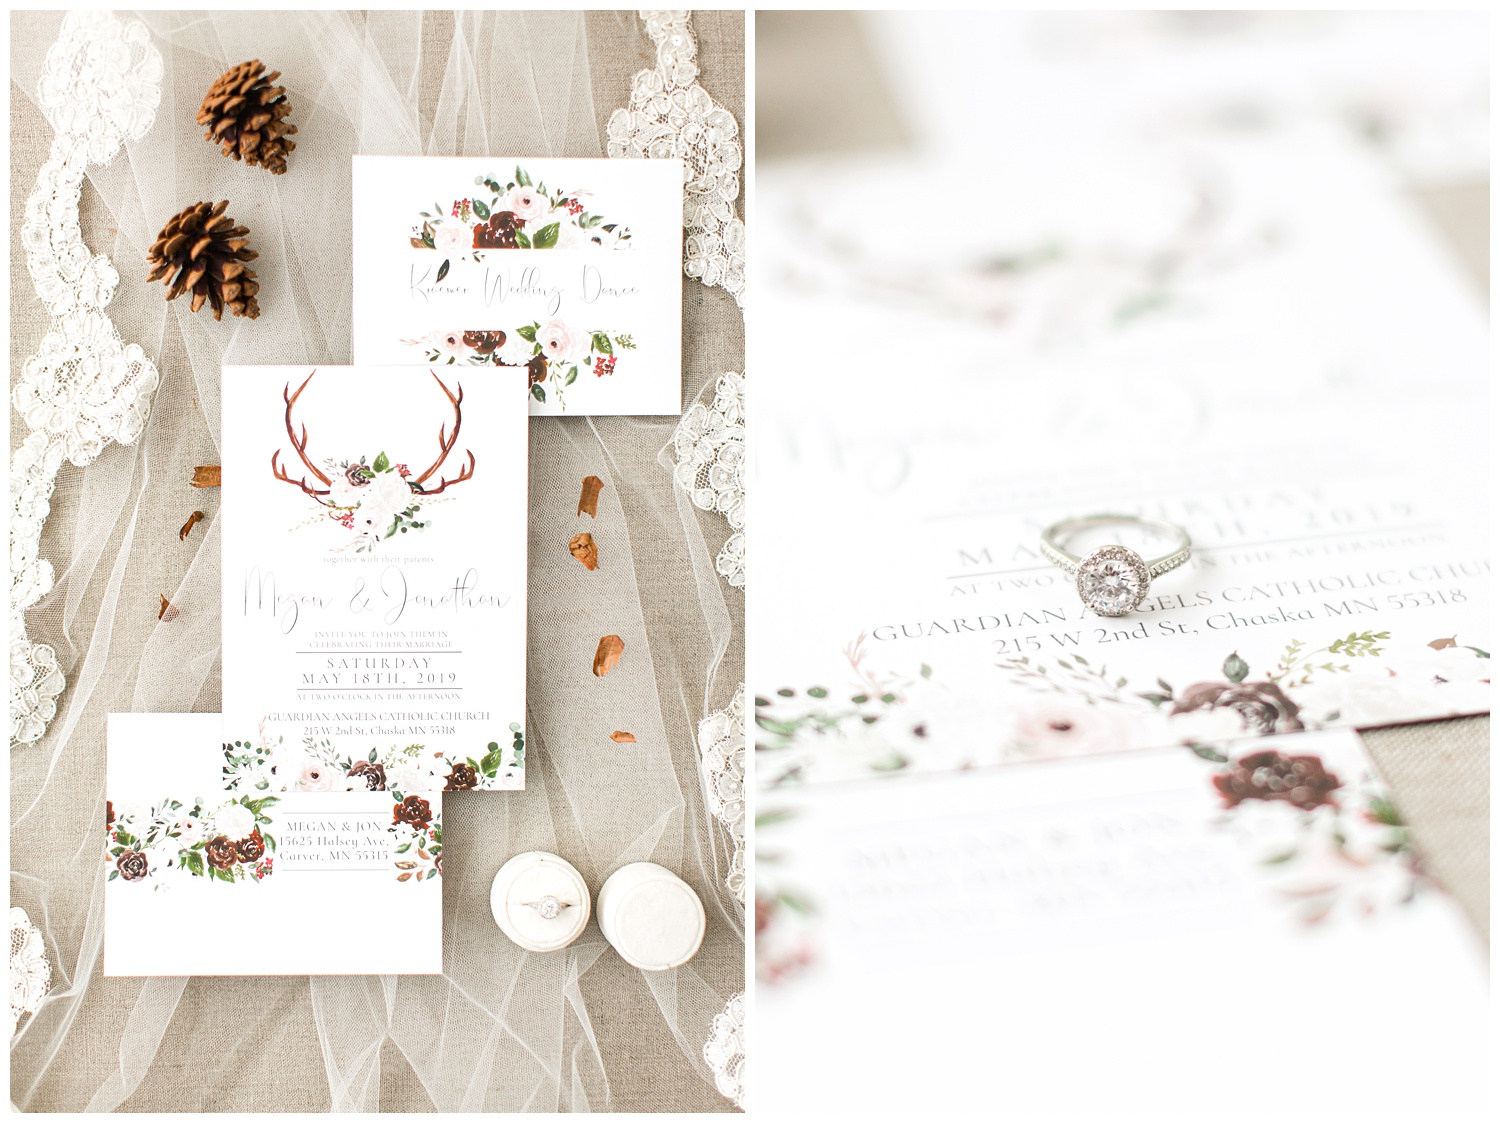 Brown, green and cream watercolor floral/deer antler wedding invitation from Phoenix Home Studio beautifully styled on a wedding veil complete with pine comes and cream ring box.